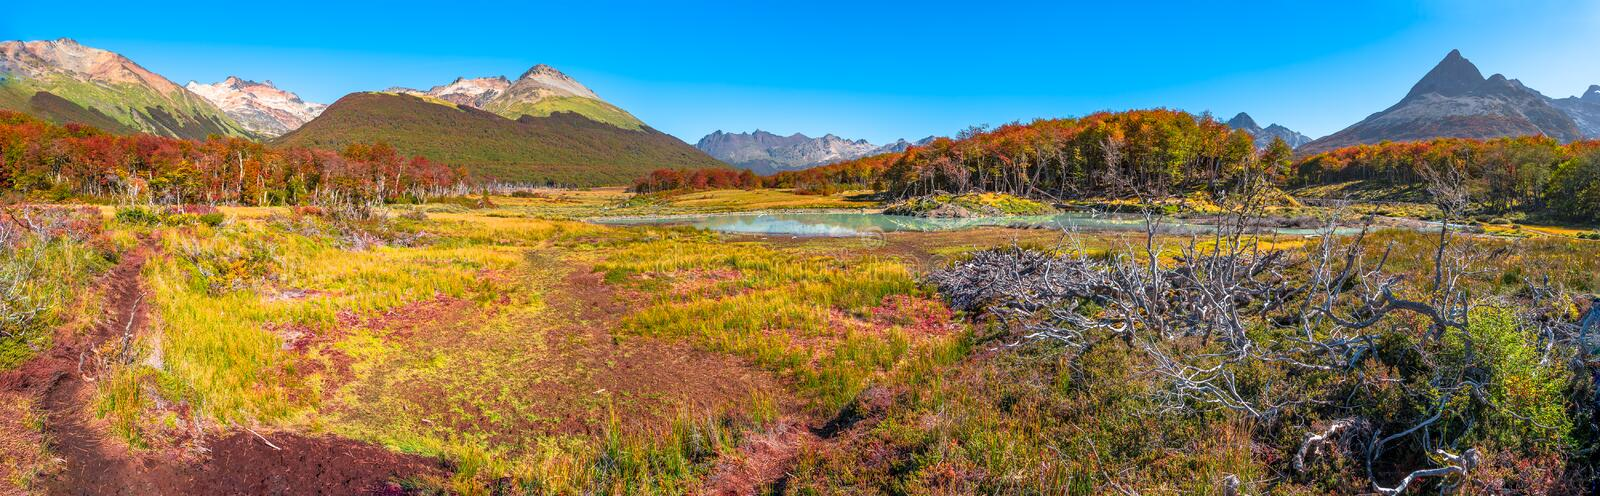 Gorgeous landscape of Patagonia`s Tierra del Fuego National Park in Autumn royalty free stock images